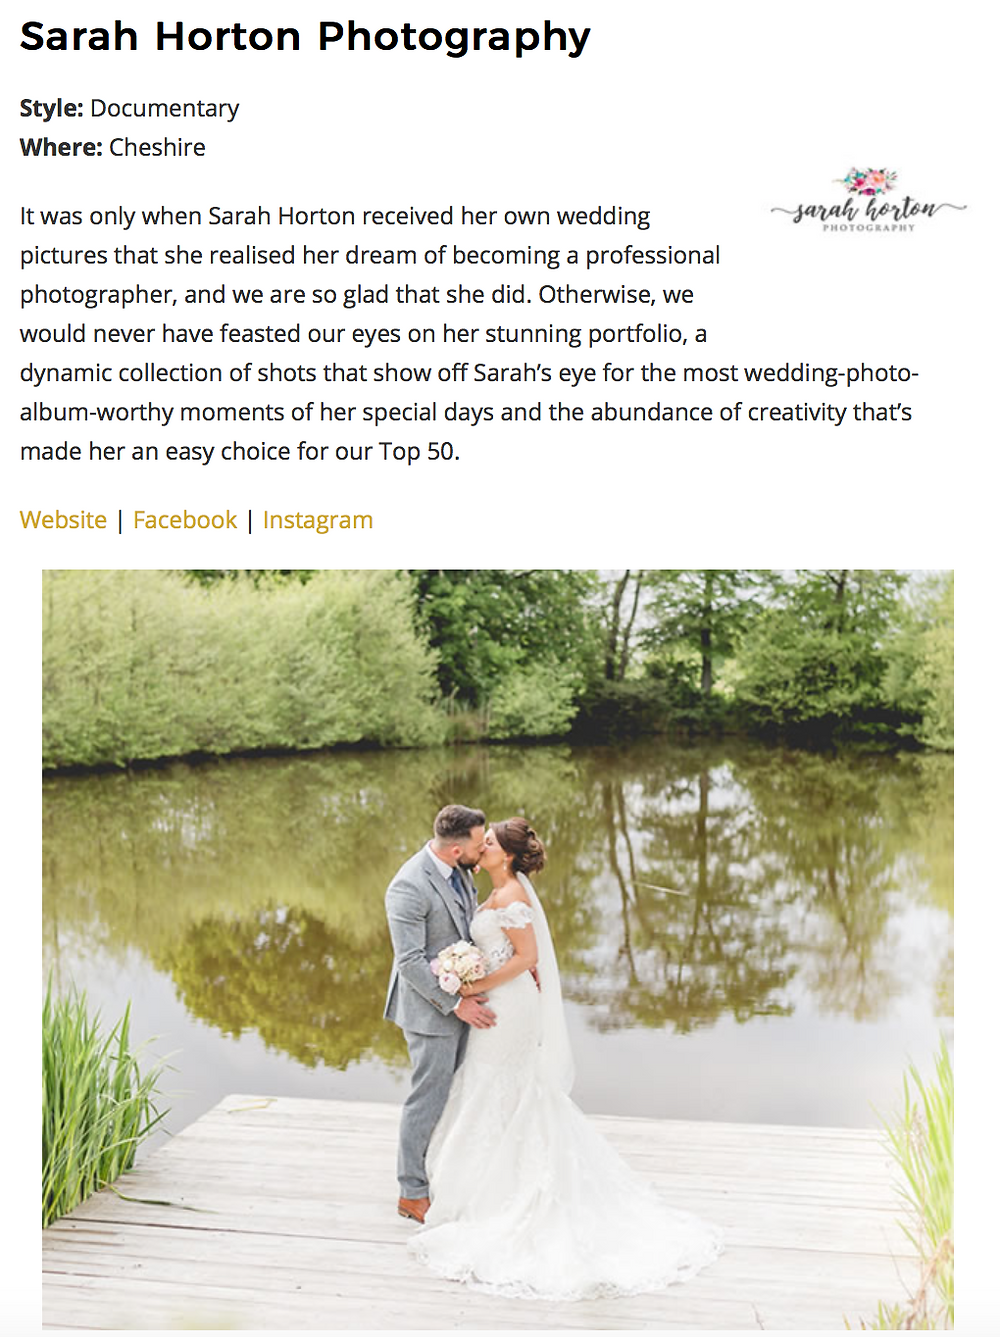 Cheshire Wedding Photographer Sarah Horton named one of Top 50 Best Wedding Photographers in the UK